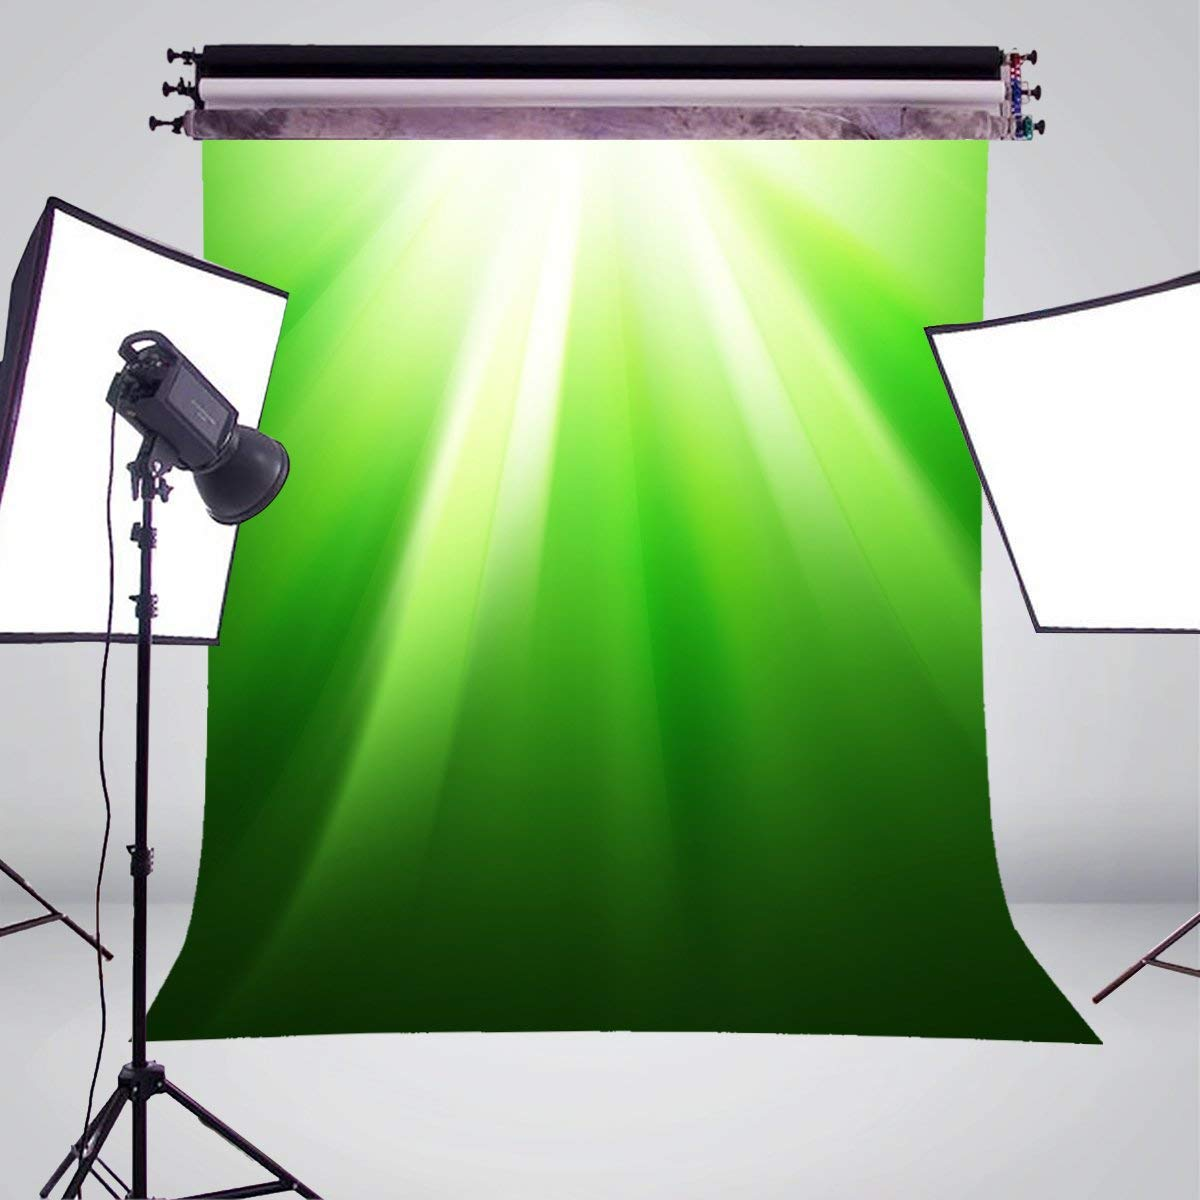 Image 3 - Green Spring Photography Backdrops Sunlight Photo Studio Backgound Wall Photography Background 5x7ft-in Photo Studio Accessories from Consumer Electronics